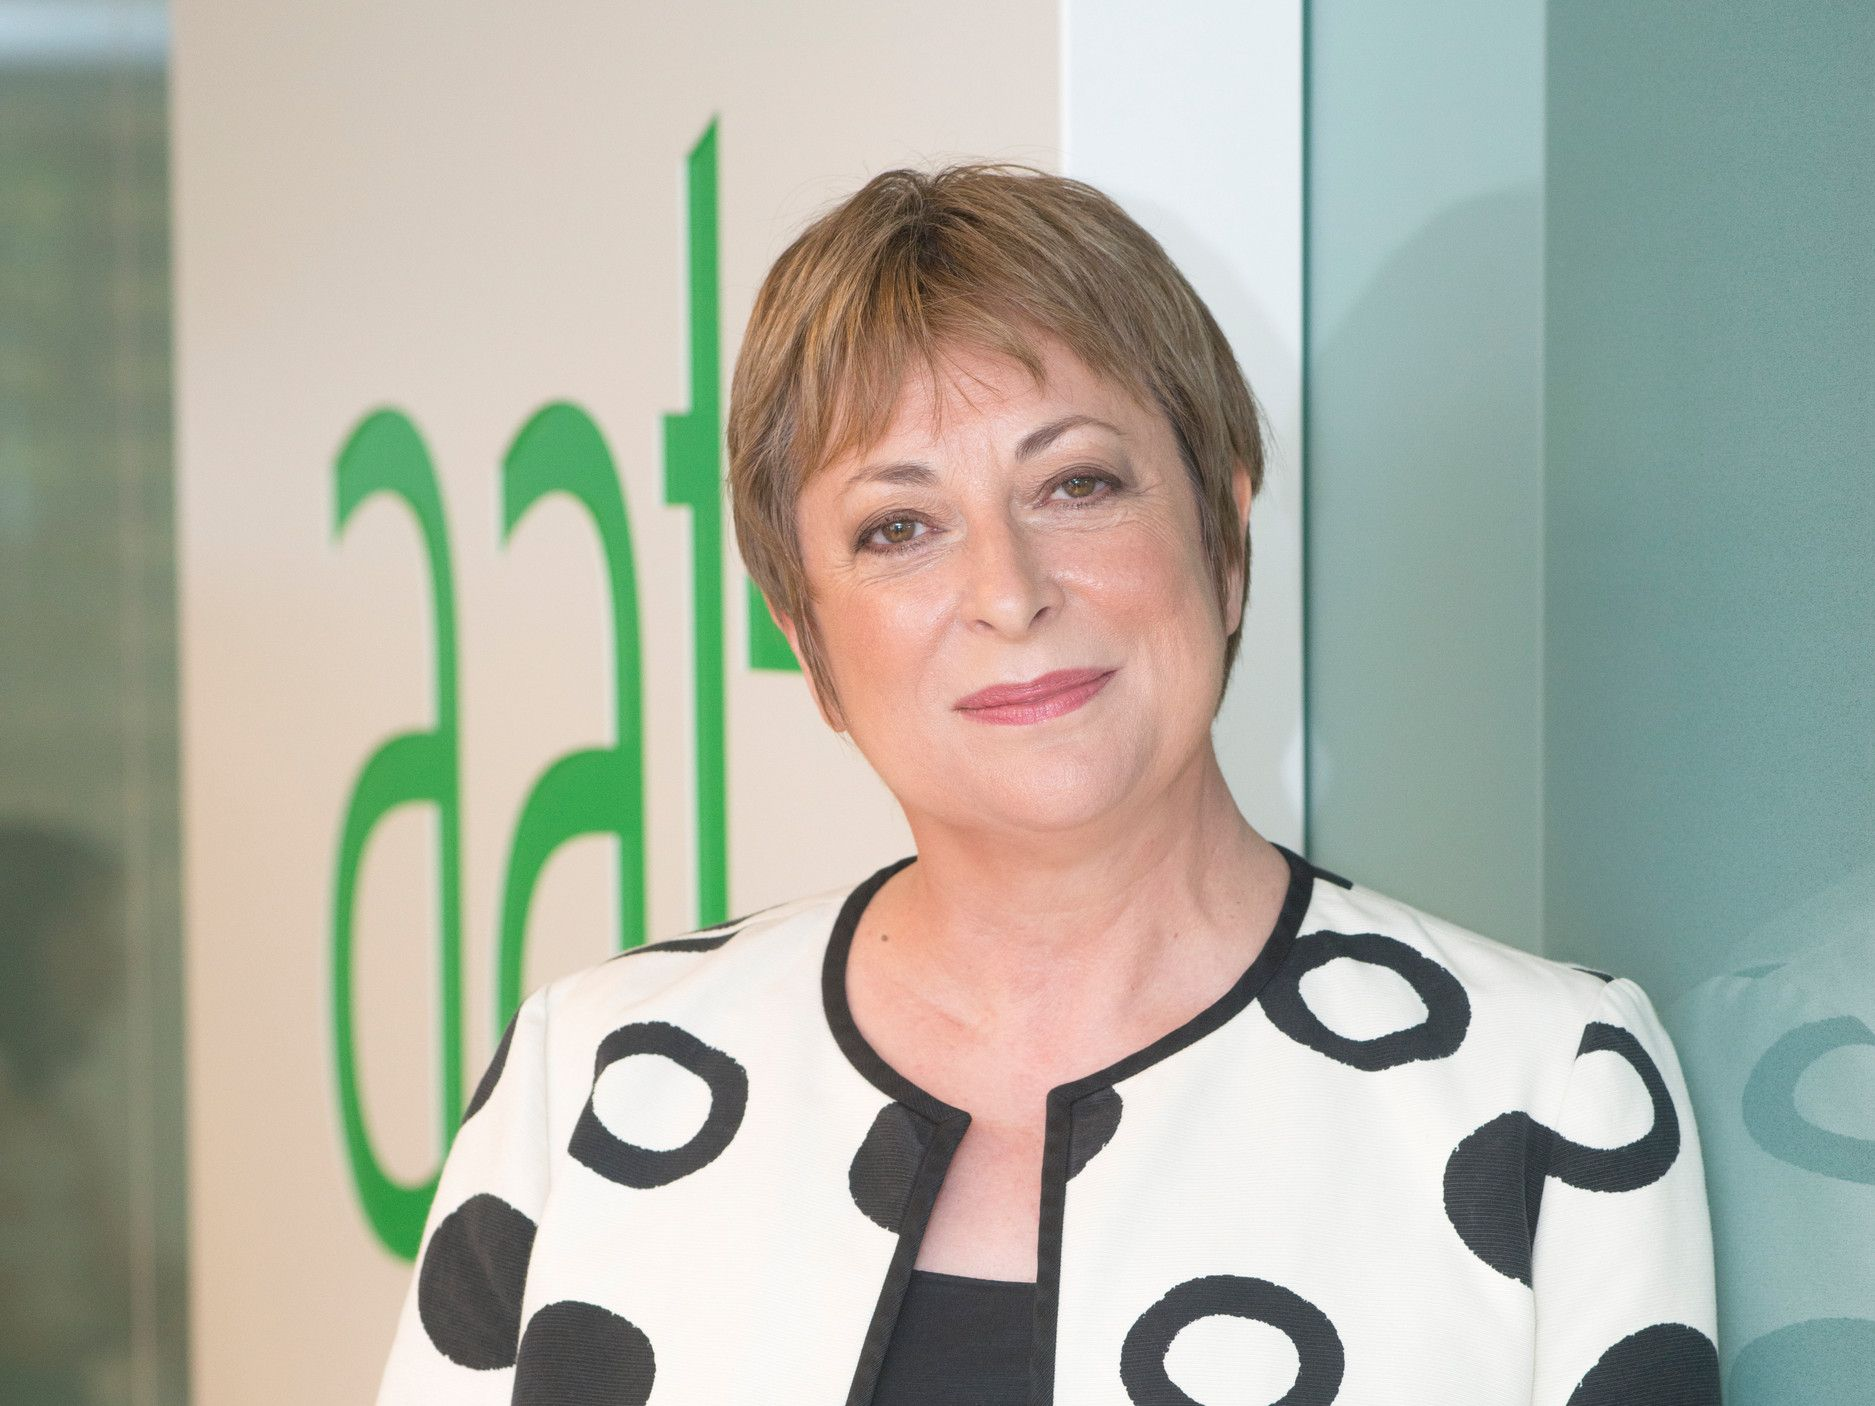 Jane Scott Paul OBE is retiring after 27 years at AAT